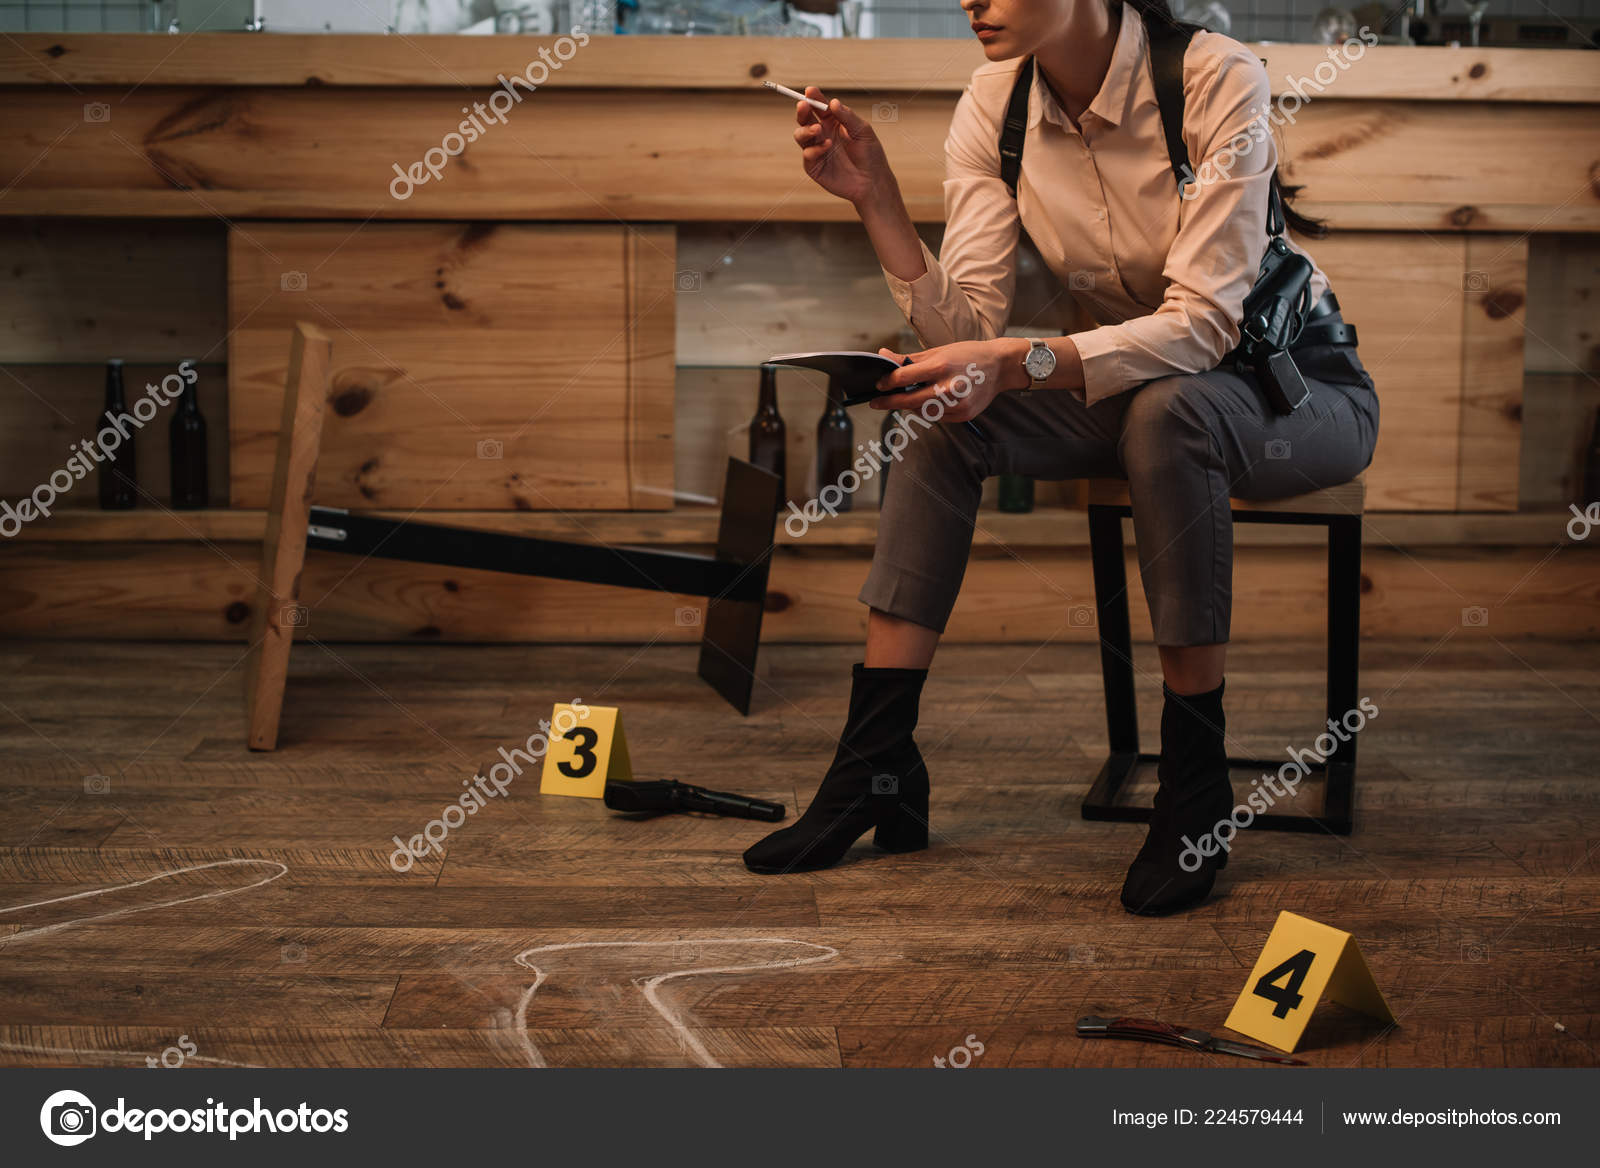 Cropped View Of Smoking Female Detective Sitting At Crime Scene With Evidence Markers And Dead Body Outline Photo By VitalikRadko